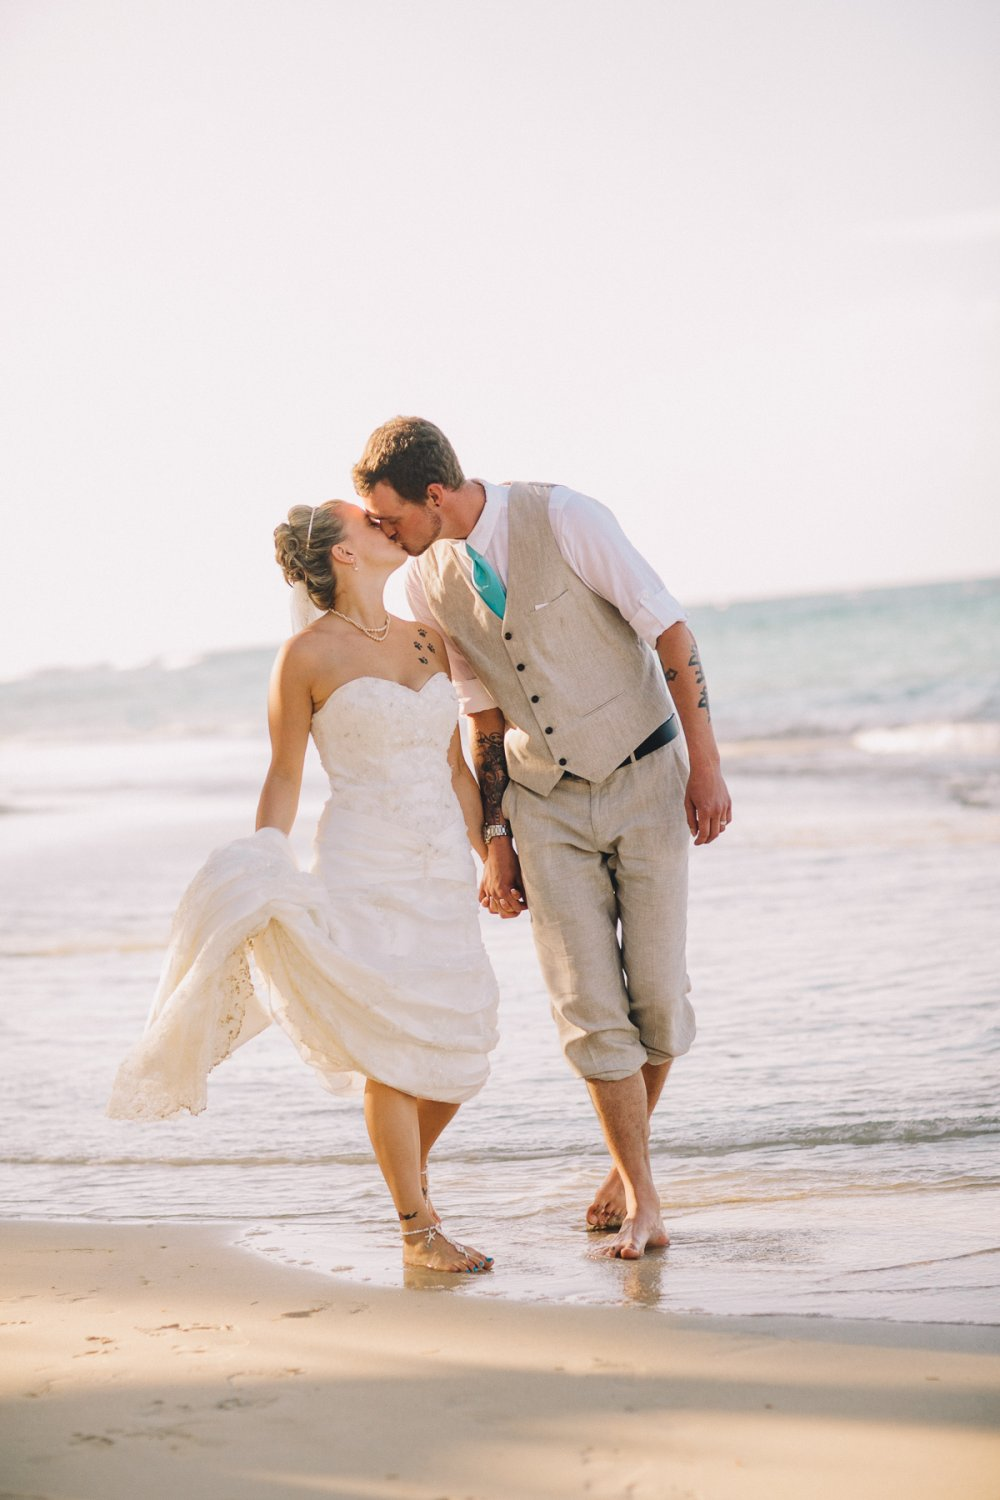 JF Hannigan Wedding Photography: Kat and Dan: a jamaican getaway 26